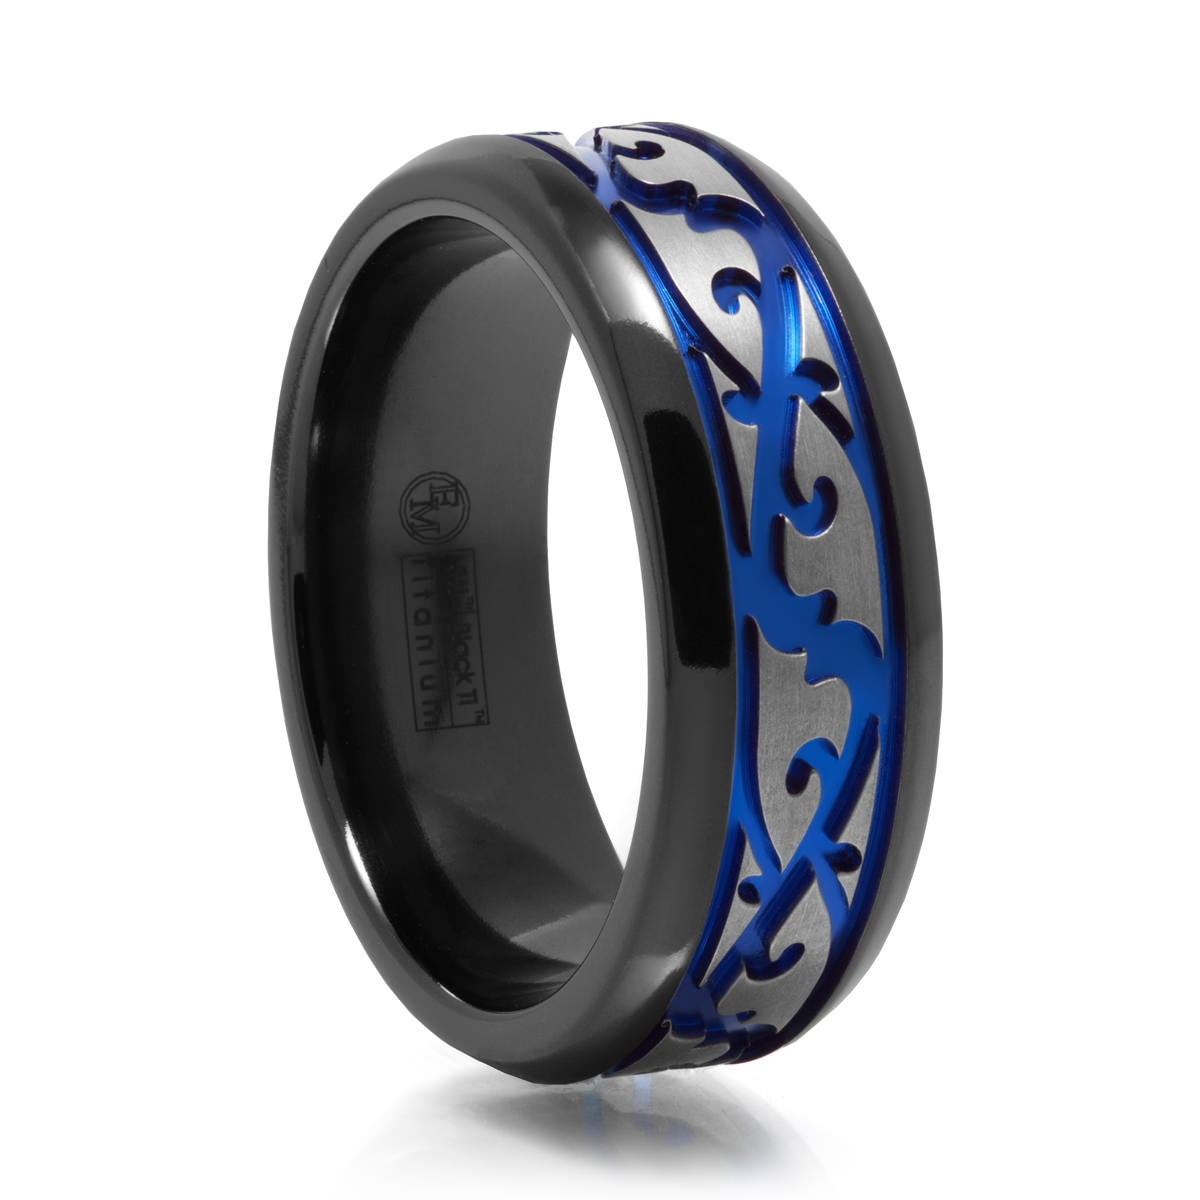 Men's Paisley Design Black Titanium Ring W/ Blue Groove Intended For Thin Blue Line Wedding Bands (View 6 of 15)